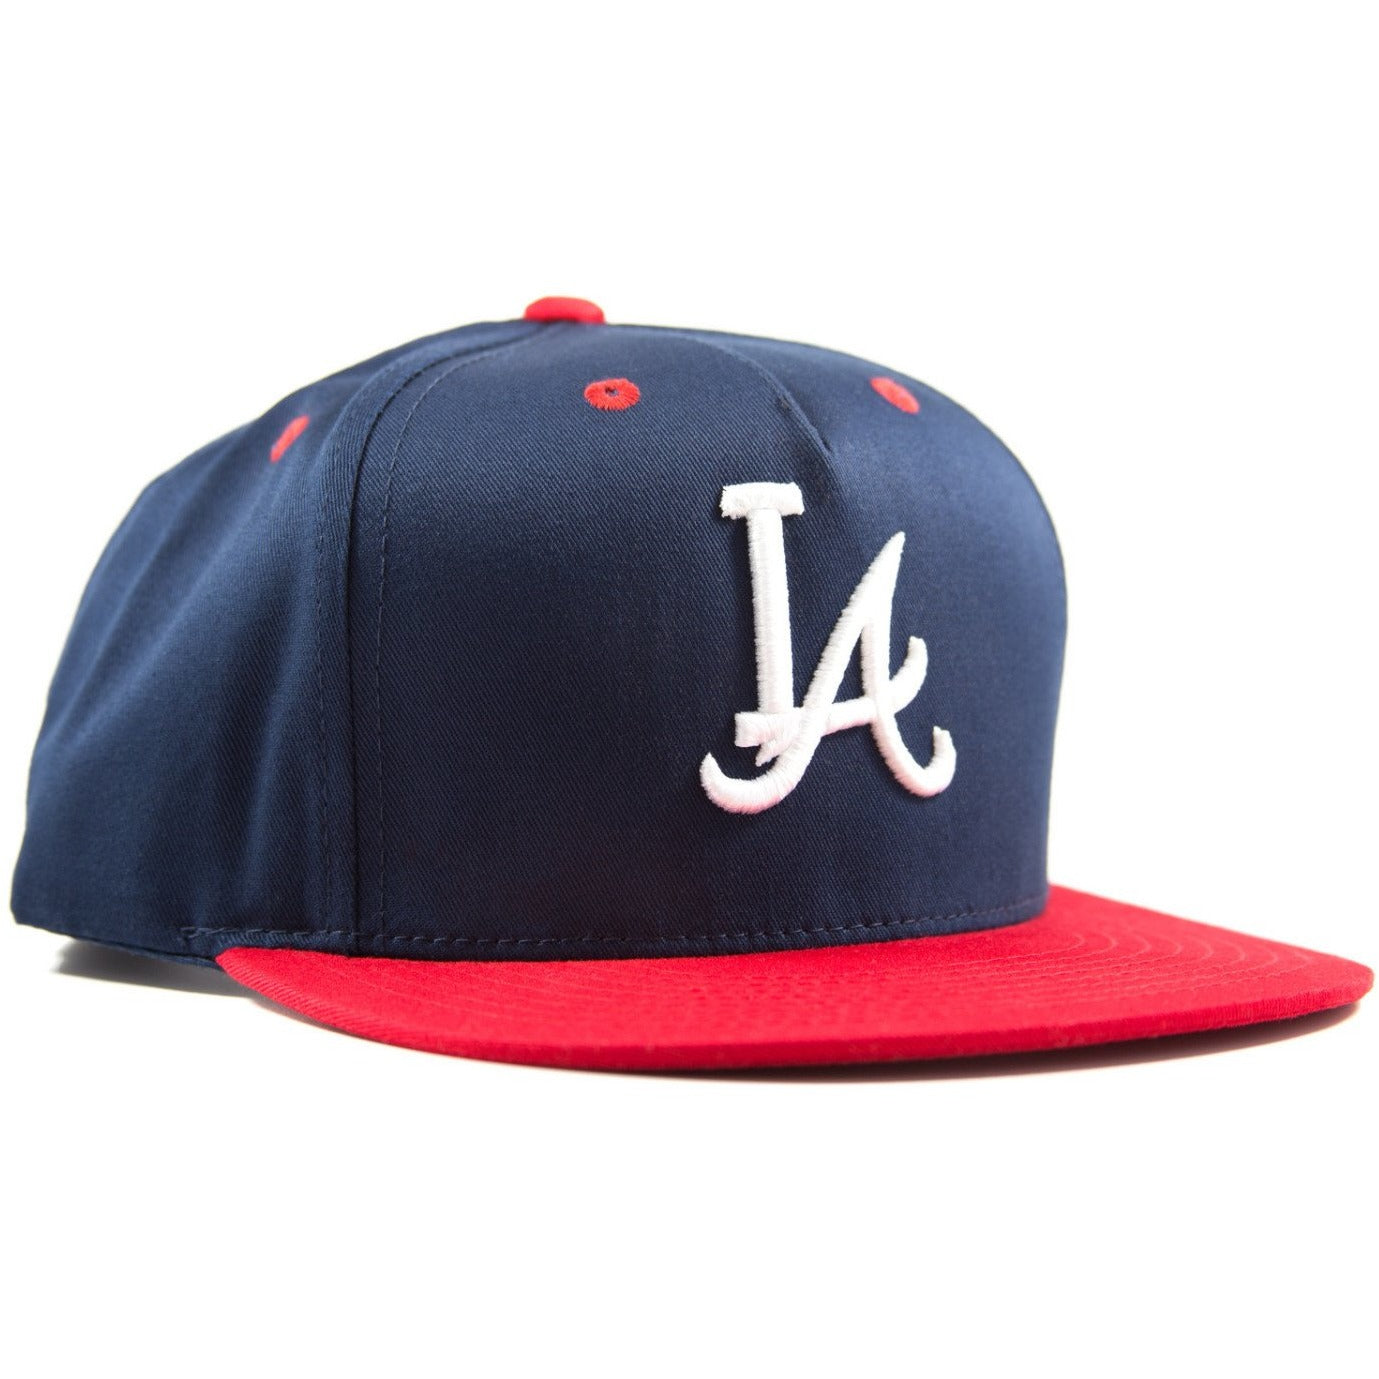 Five-panel navy & red cotton/poly snapback featuring custom A.T.L.A. design in 3D embroidery on crown and Bled logo on the back. Los Angeles Dodgers Atlanta Braves, skateboards, hype, streetwear